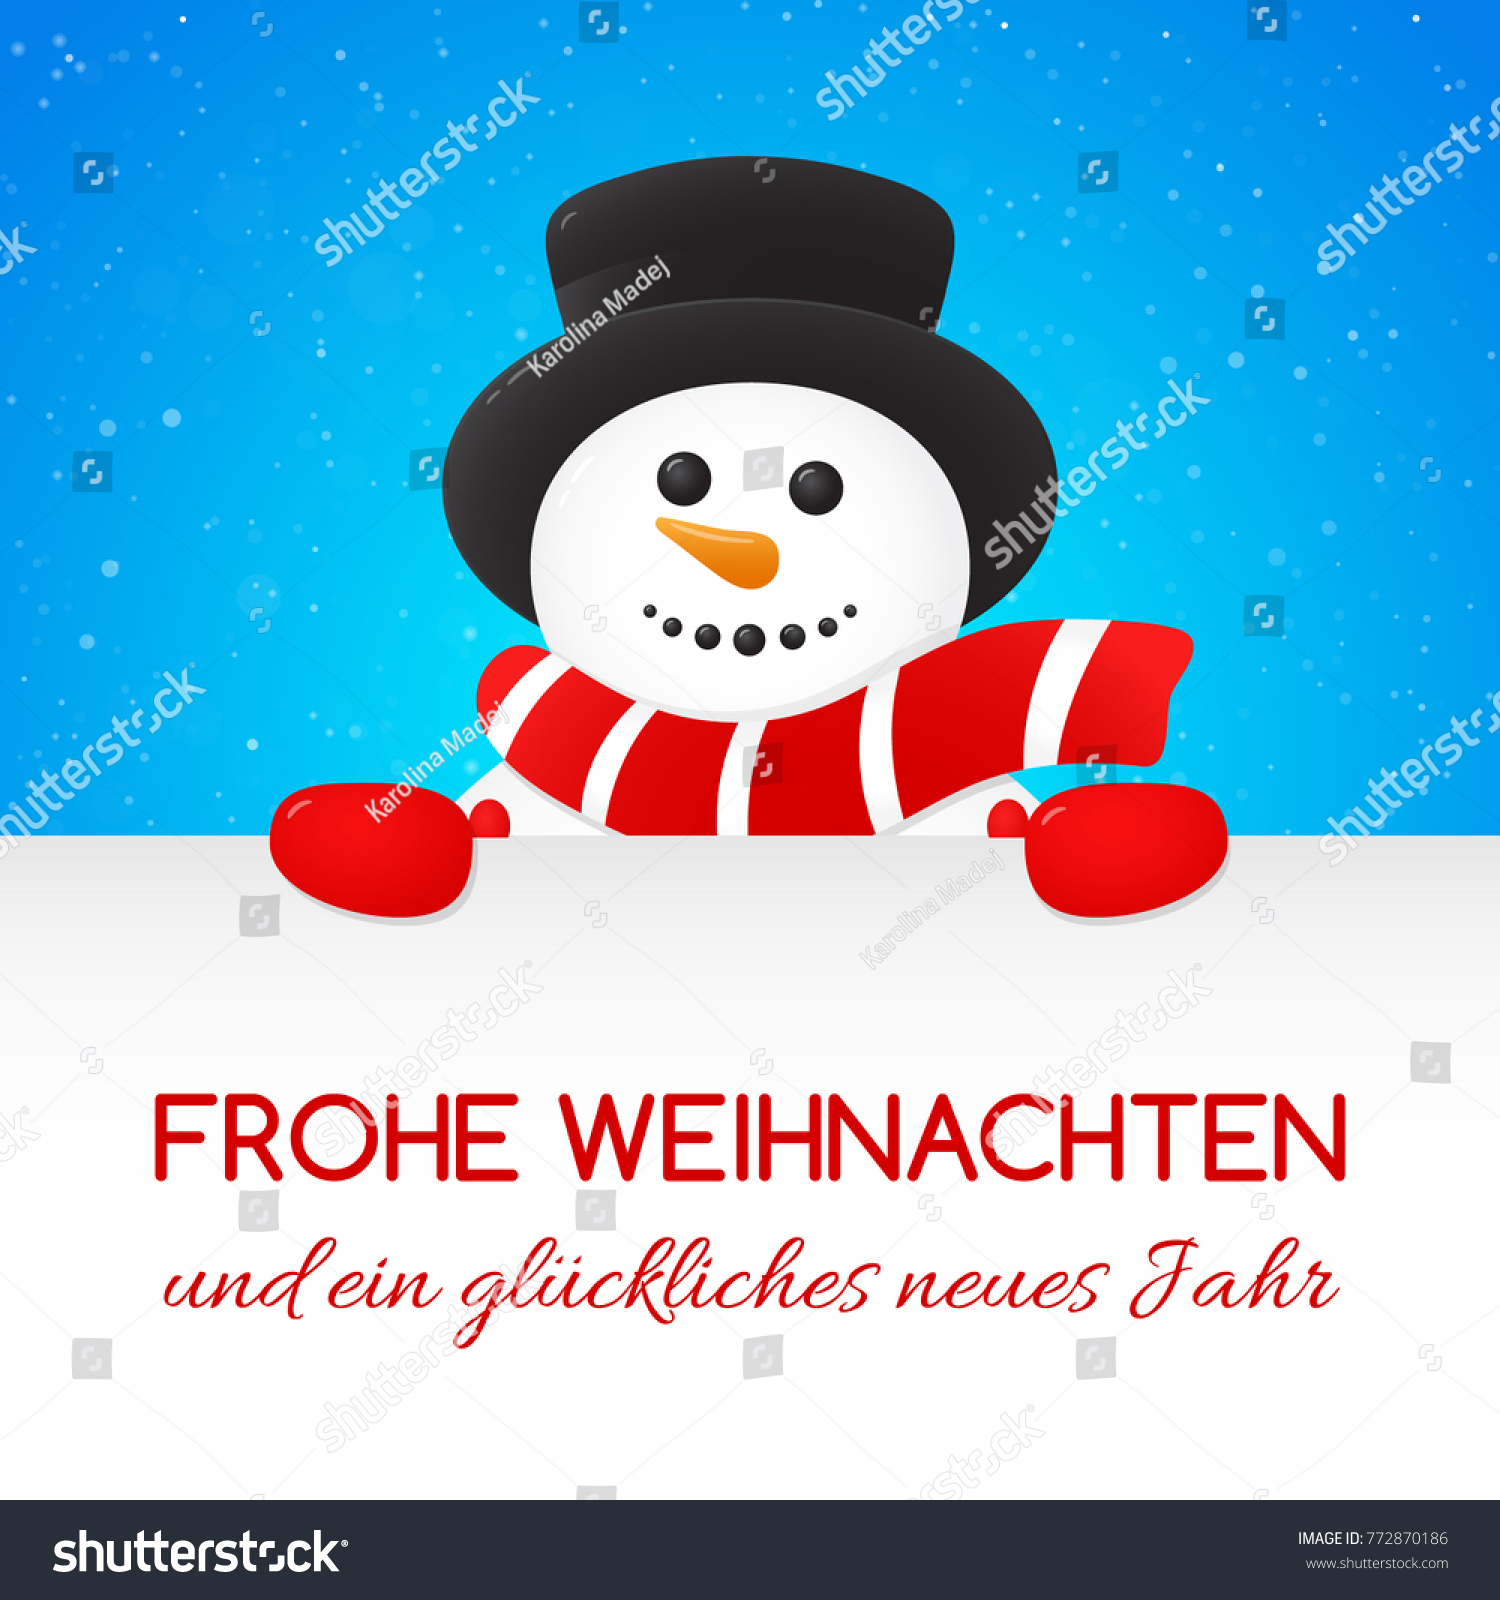 Frohe Weihnachten Frohe Weihnachten Merry Christmas German Christmas Stock Vector